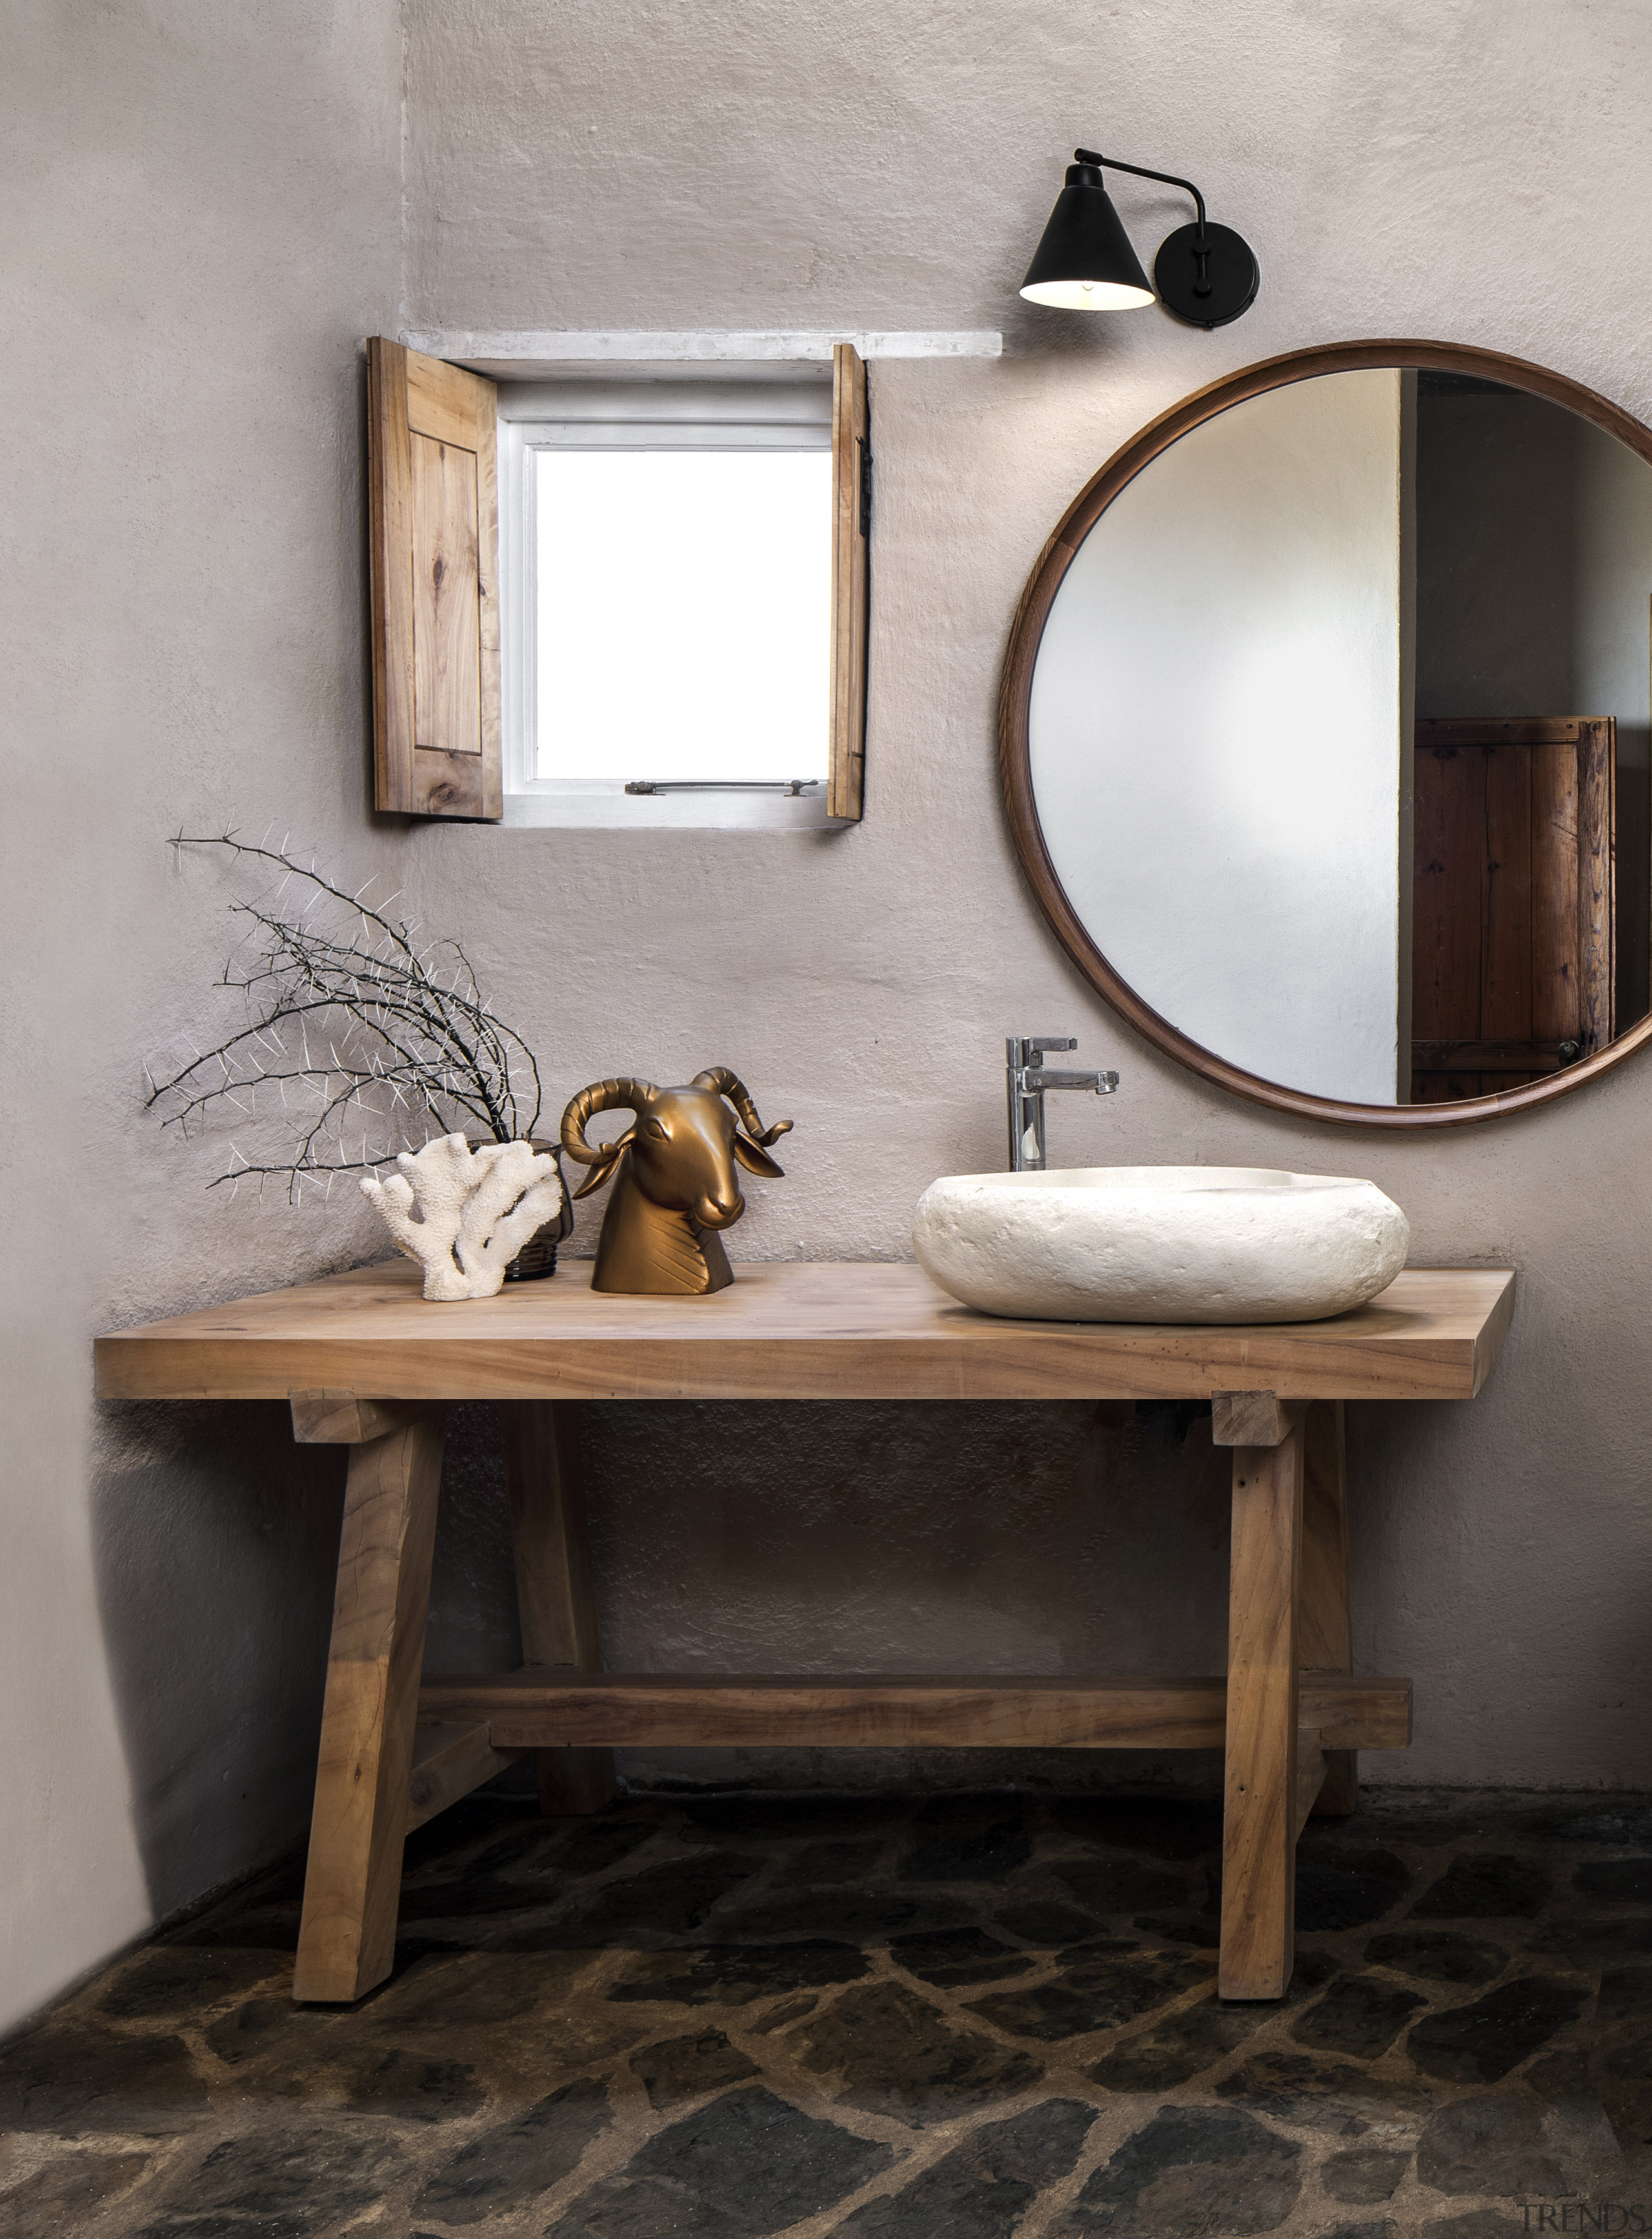 A custom-made poplar vanity and shutters were added